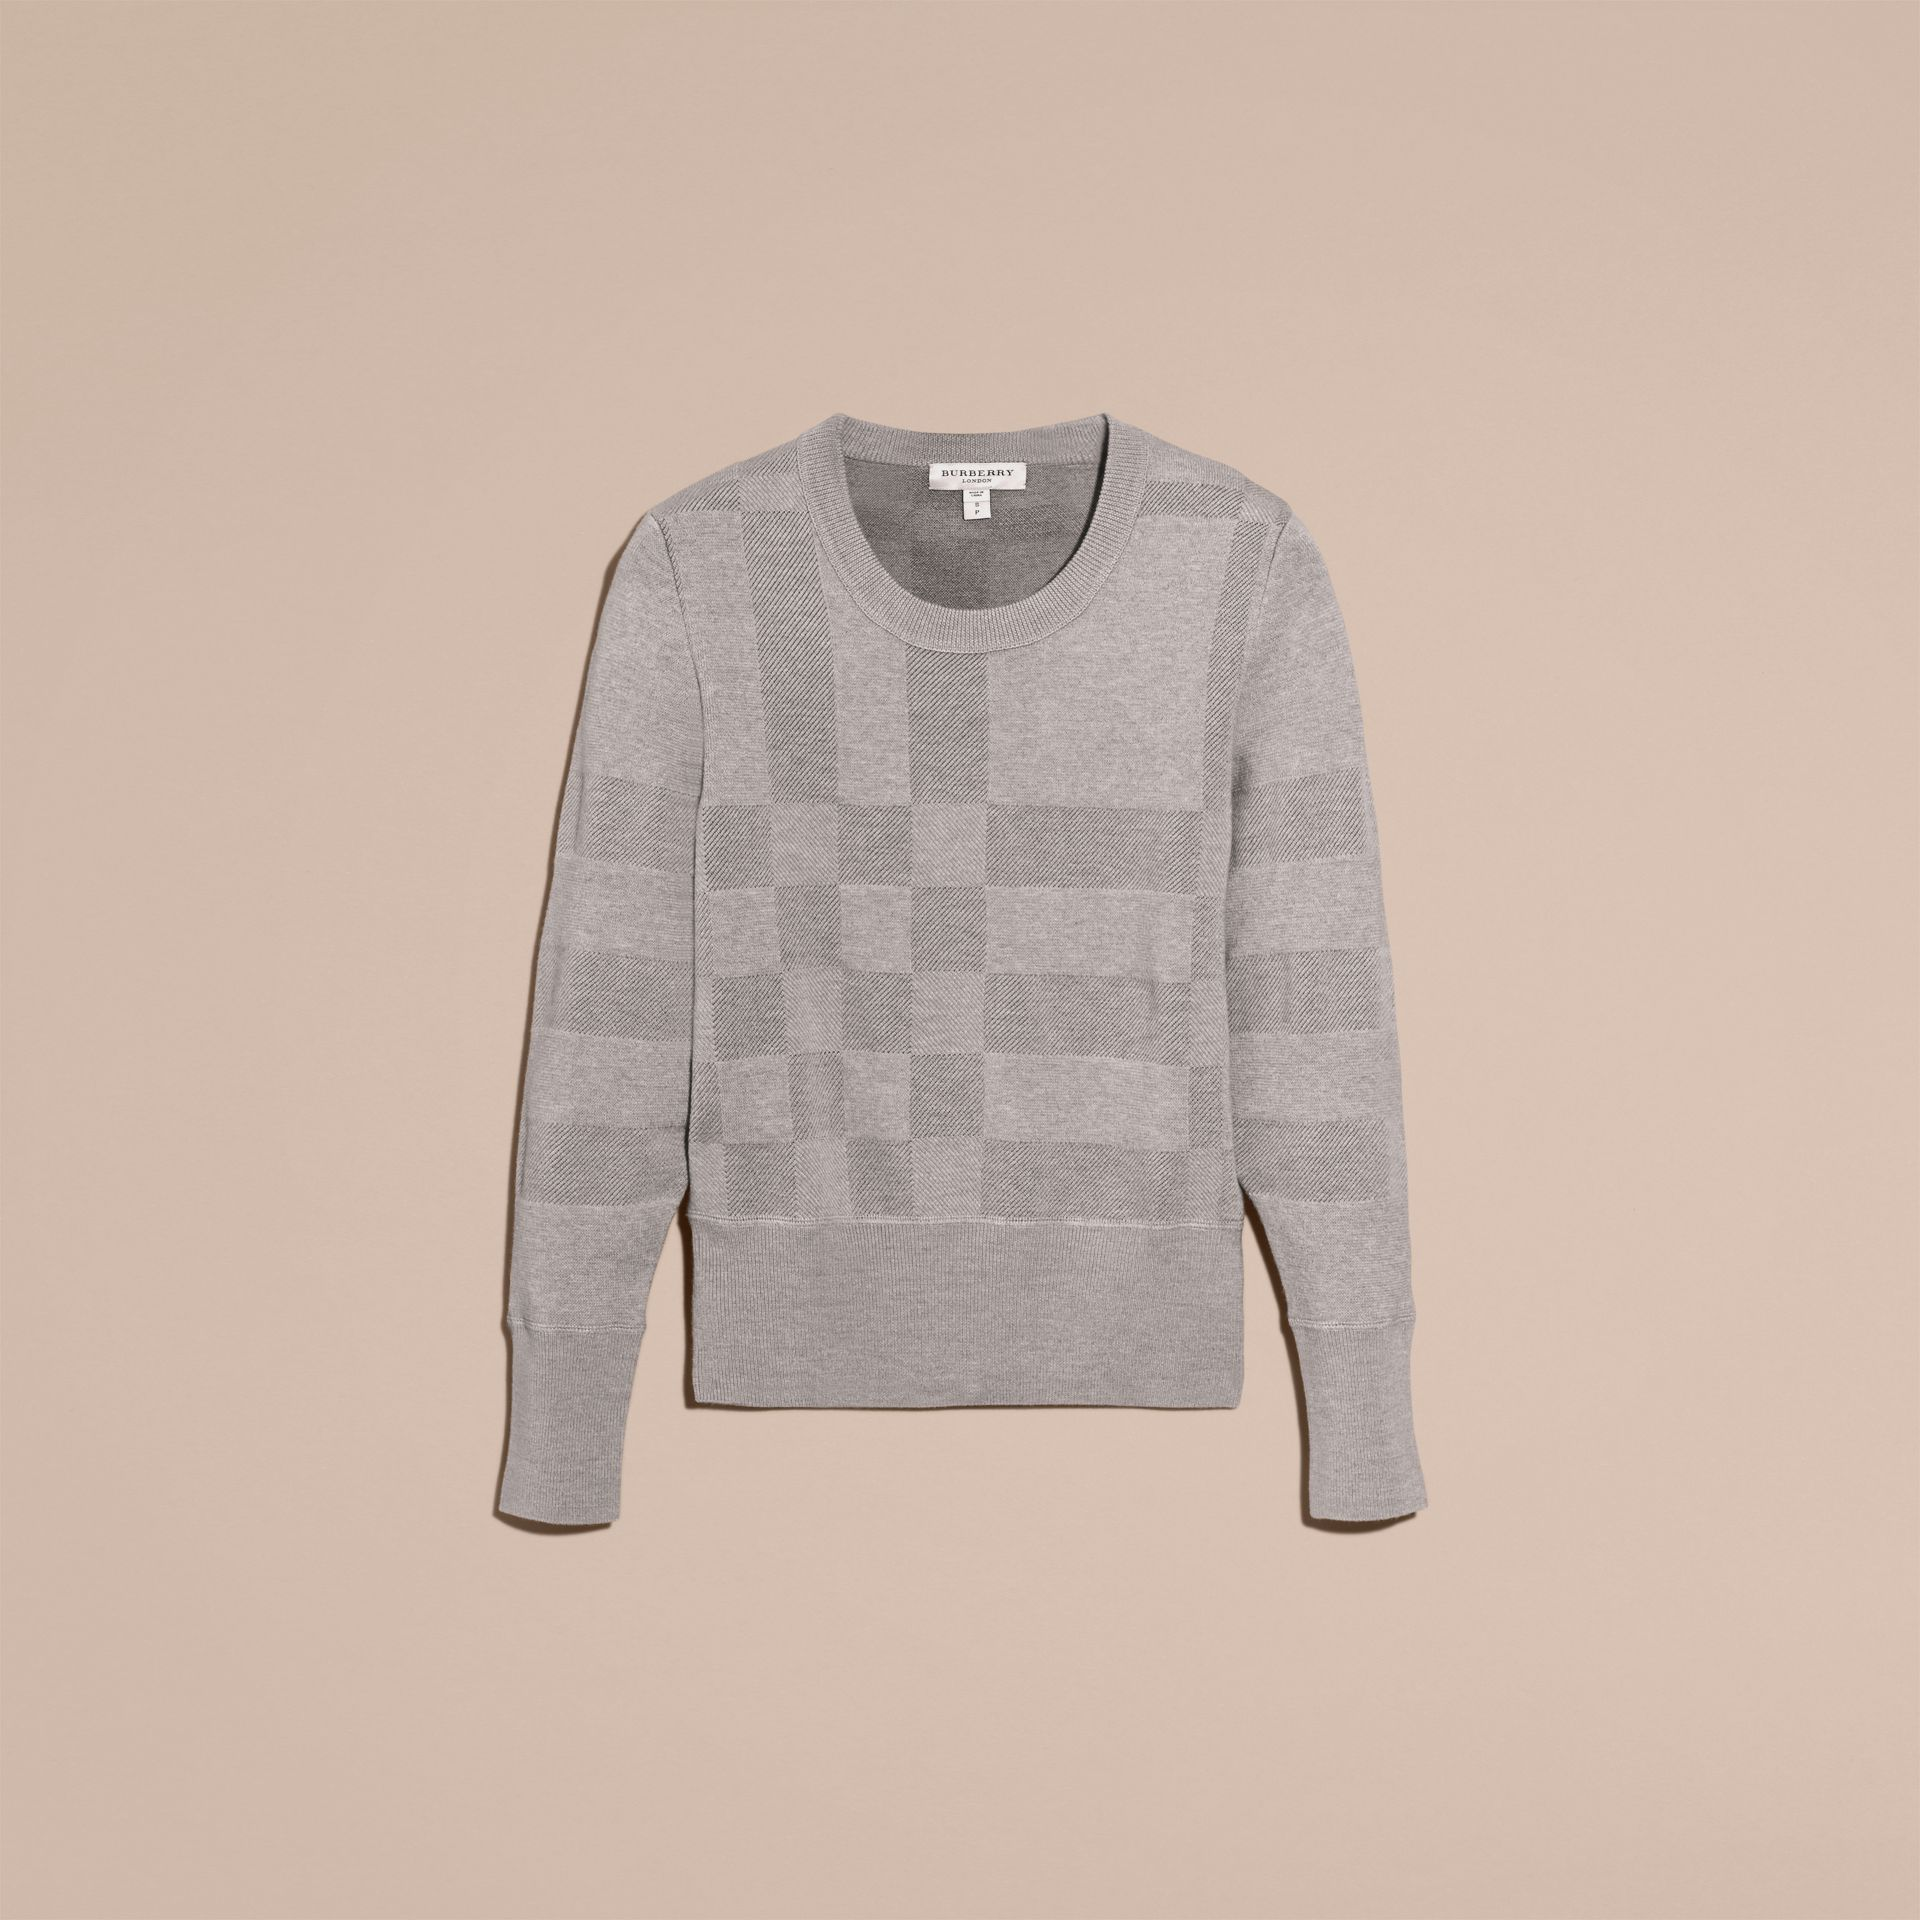 Check Knit Wool Blend Sweater in Mid Grey Melange - Women | Burberry United Kingdom - gallery image 4